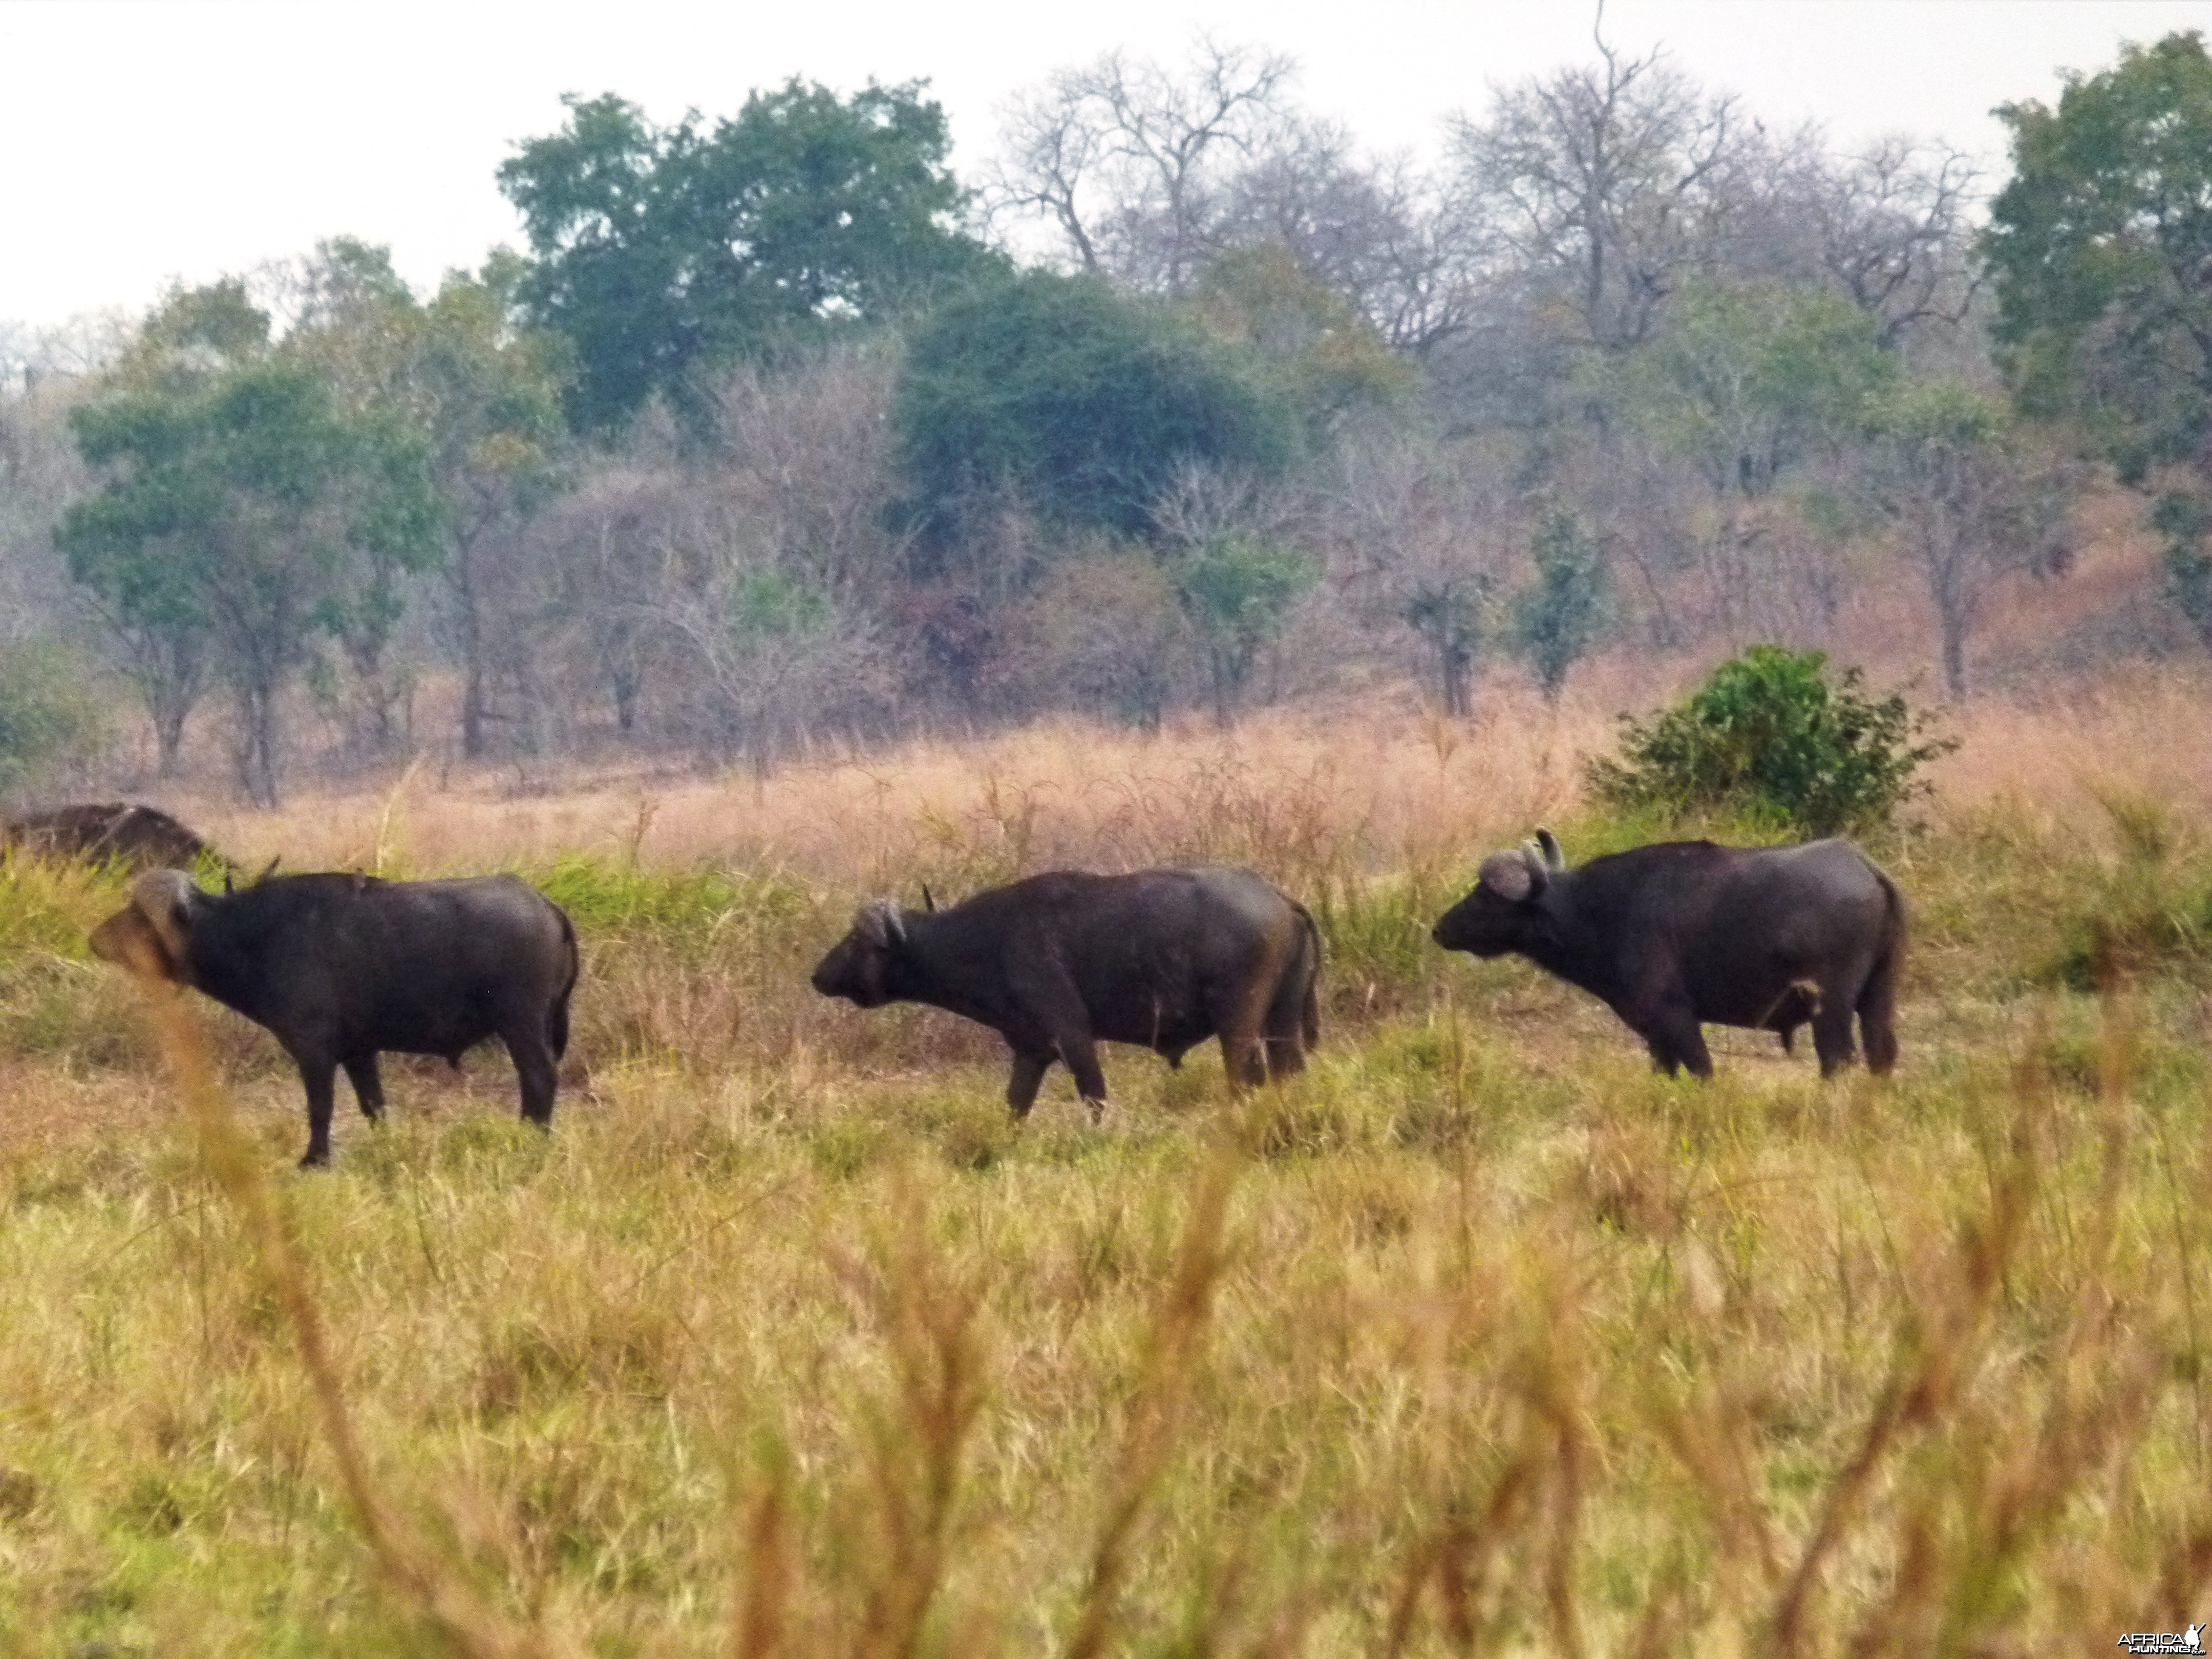 The old Buffaloes that we cherish, clever, cunning and evil... Tanzania